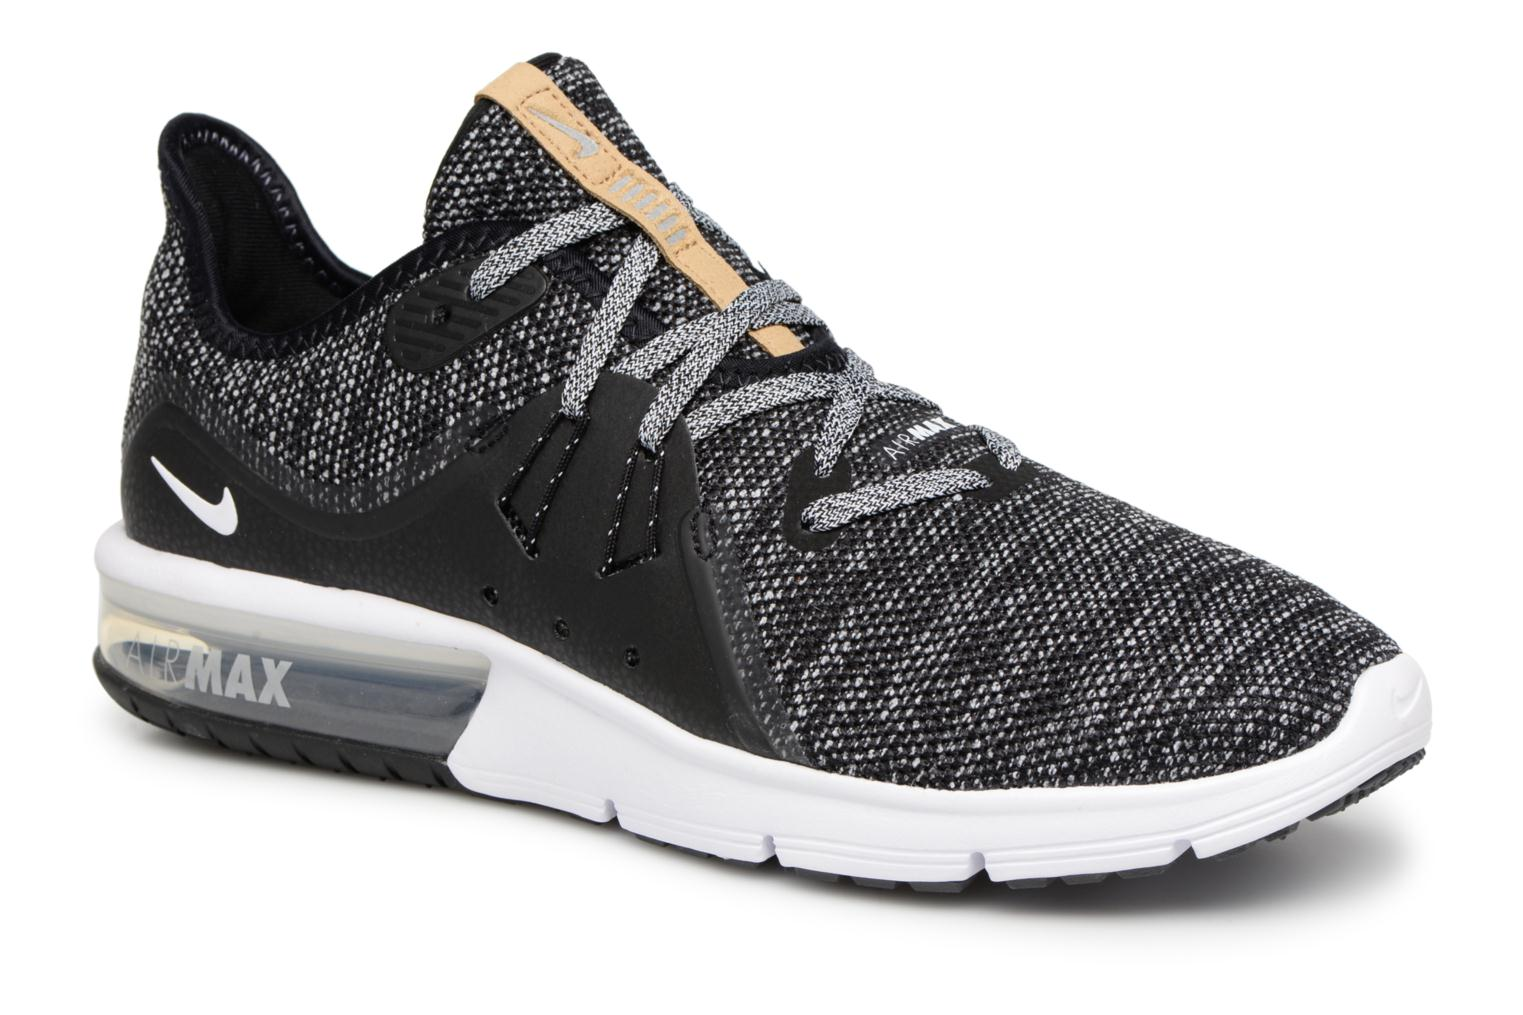 Nike - Nike Air Max Sequent 3 (Grey) - Nike Sport shoes chez (329963) a3fad3